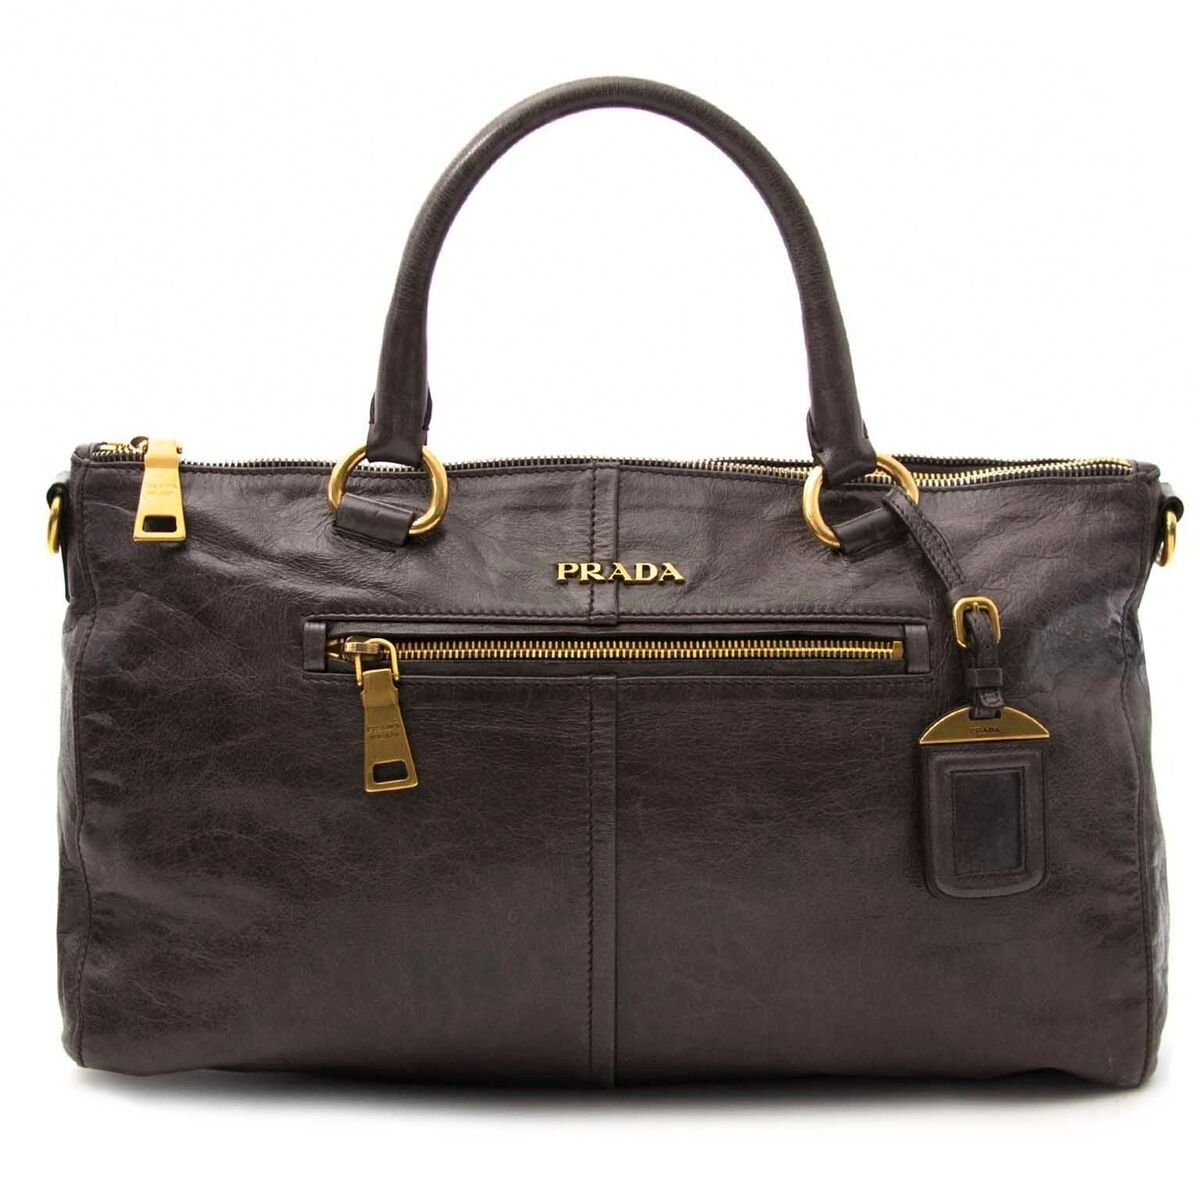 cec556ed03d Buy an authentic secondhand Prada bags at the right price at LabelLOV  vintage webshop. Safe